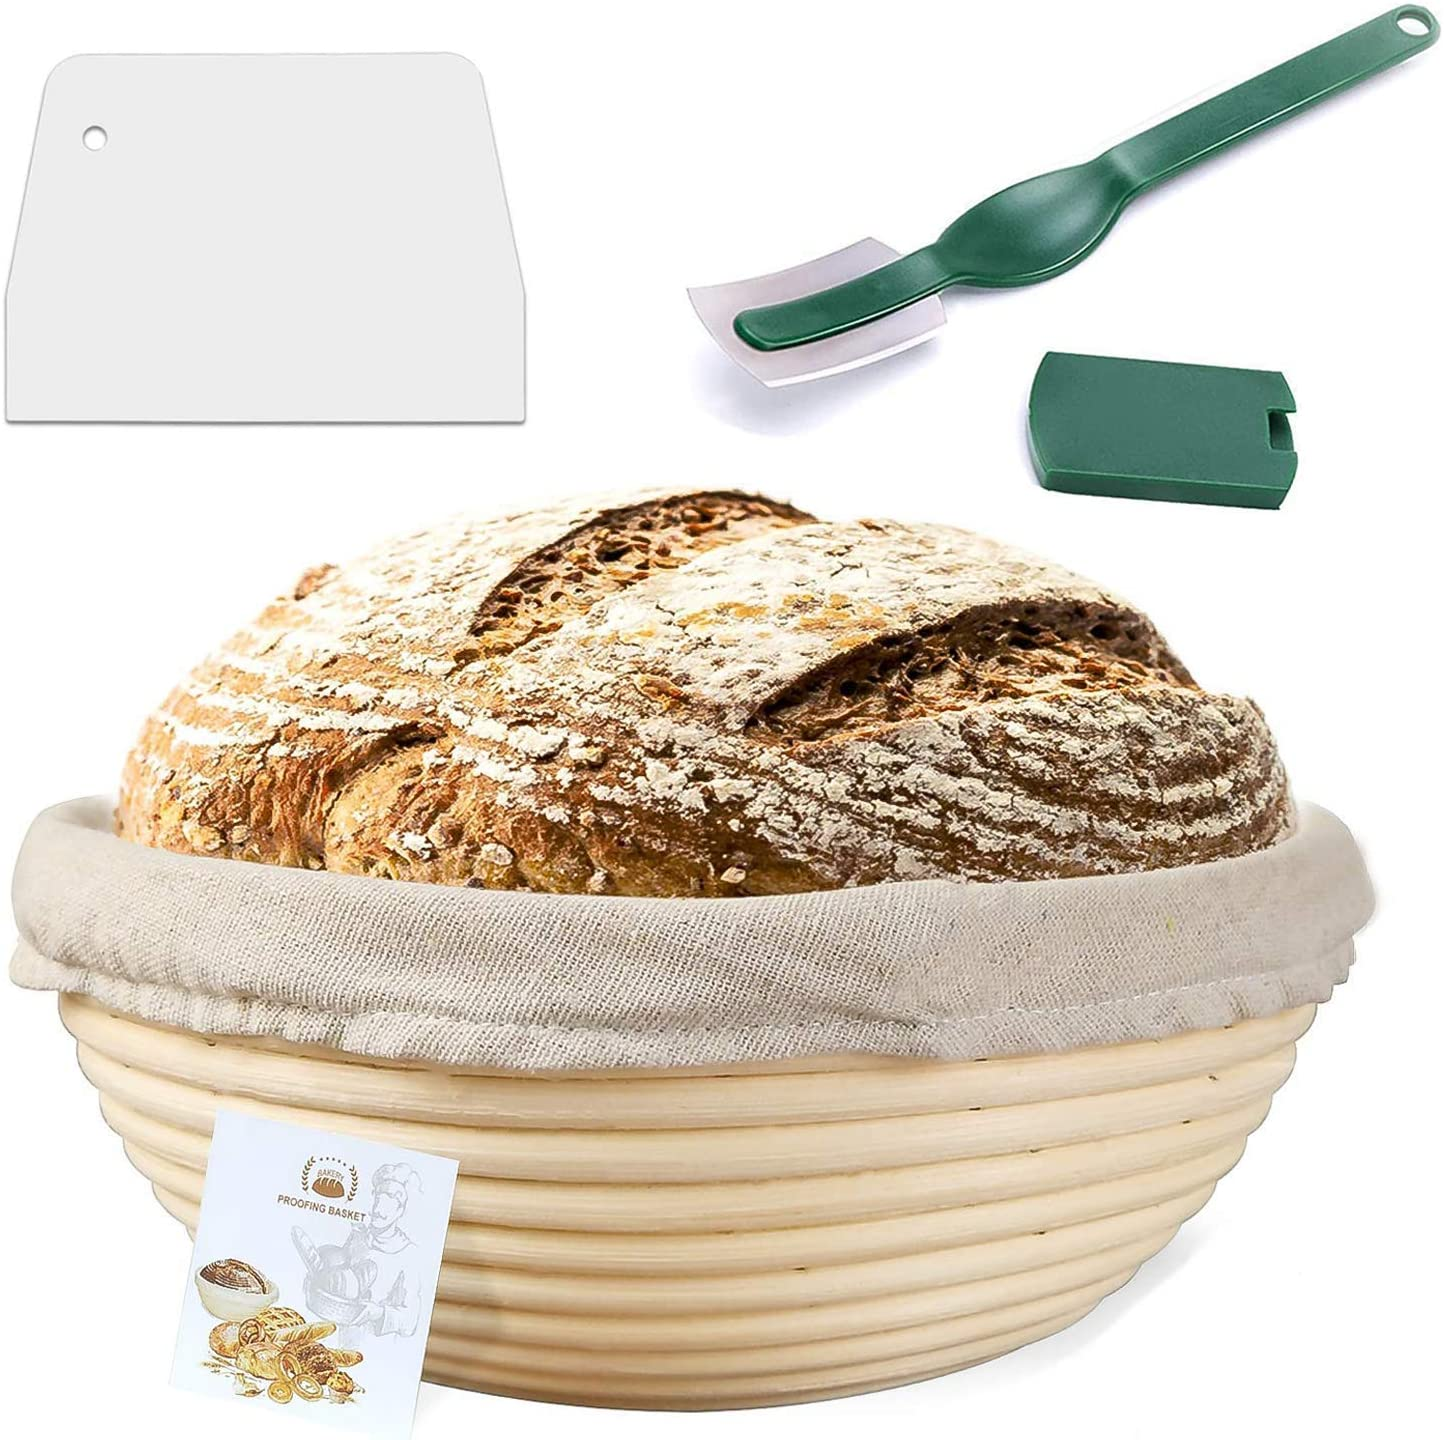 10 Inch Proofing Basket,WERTIOO Bread Proofing Basket + Bread Lame +Dough Scraper+ Linen Liner Cloth for Professional & Home Bakers